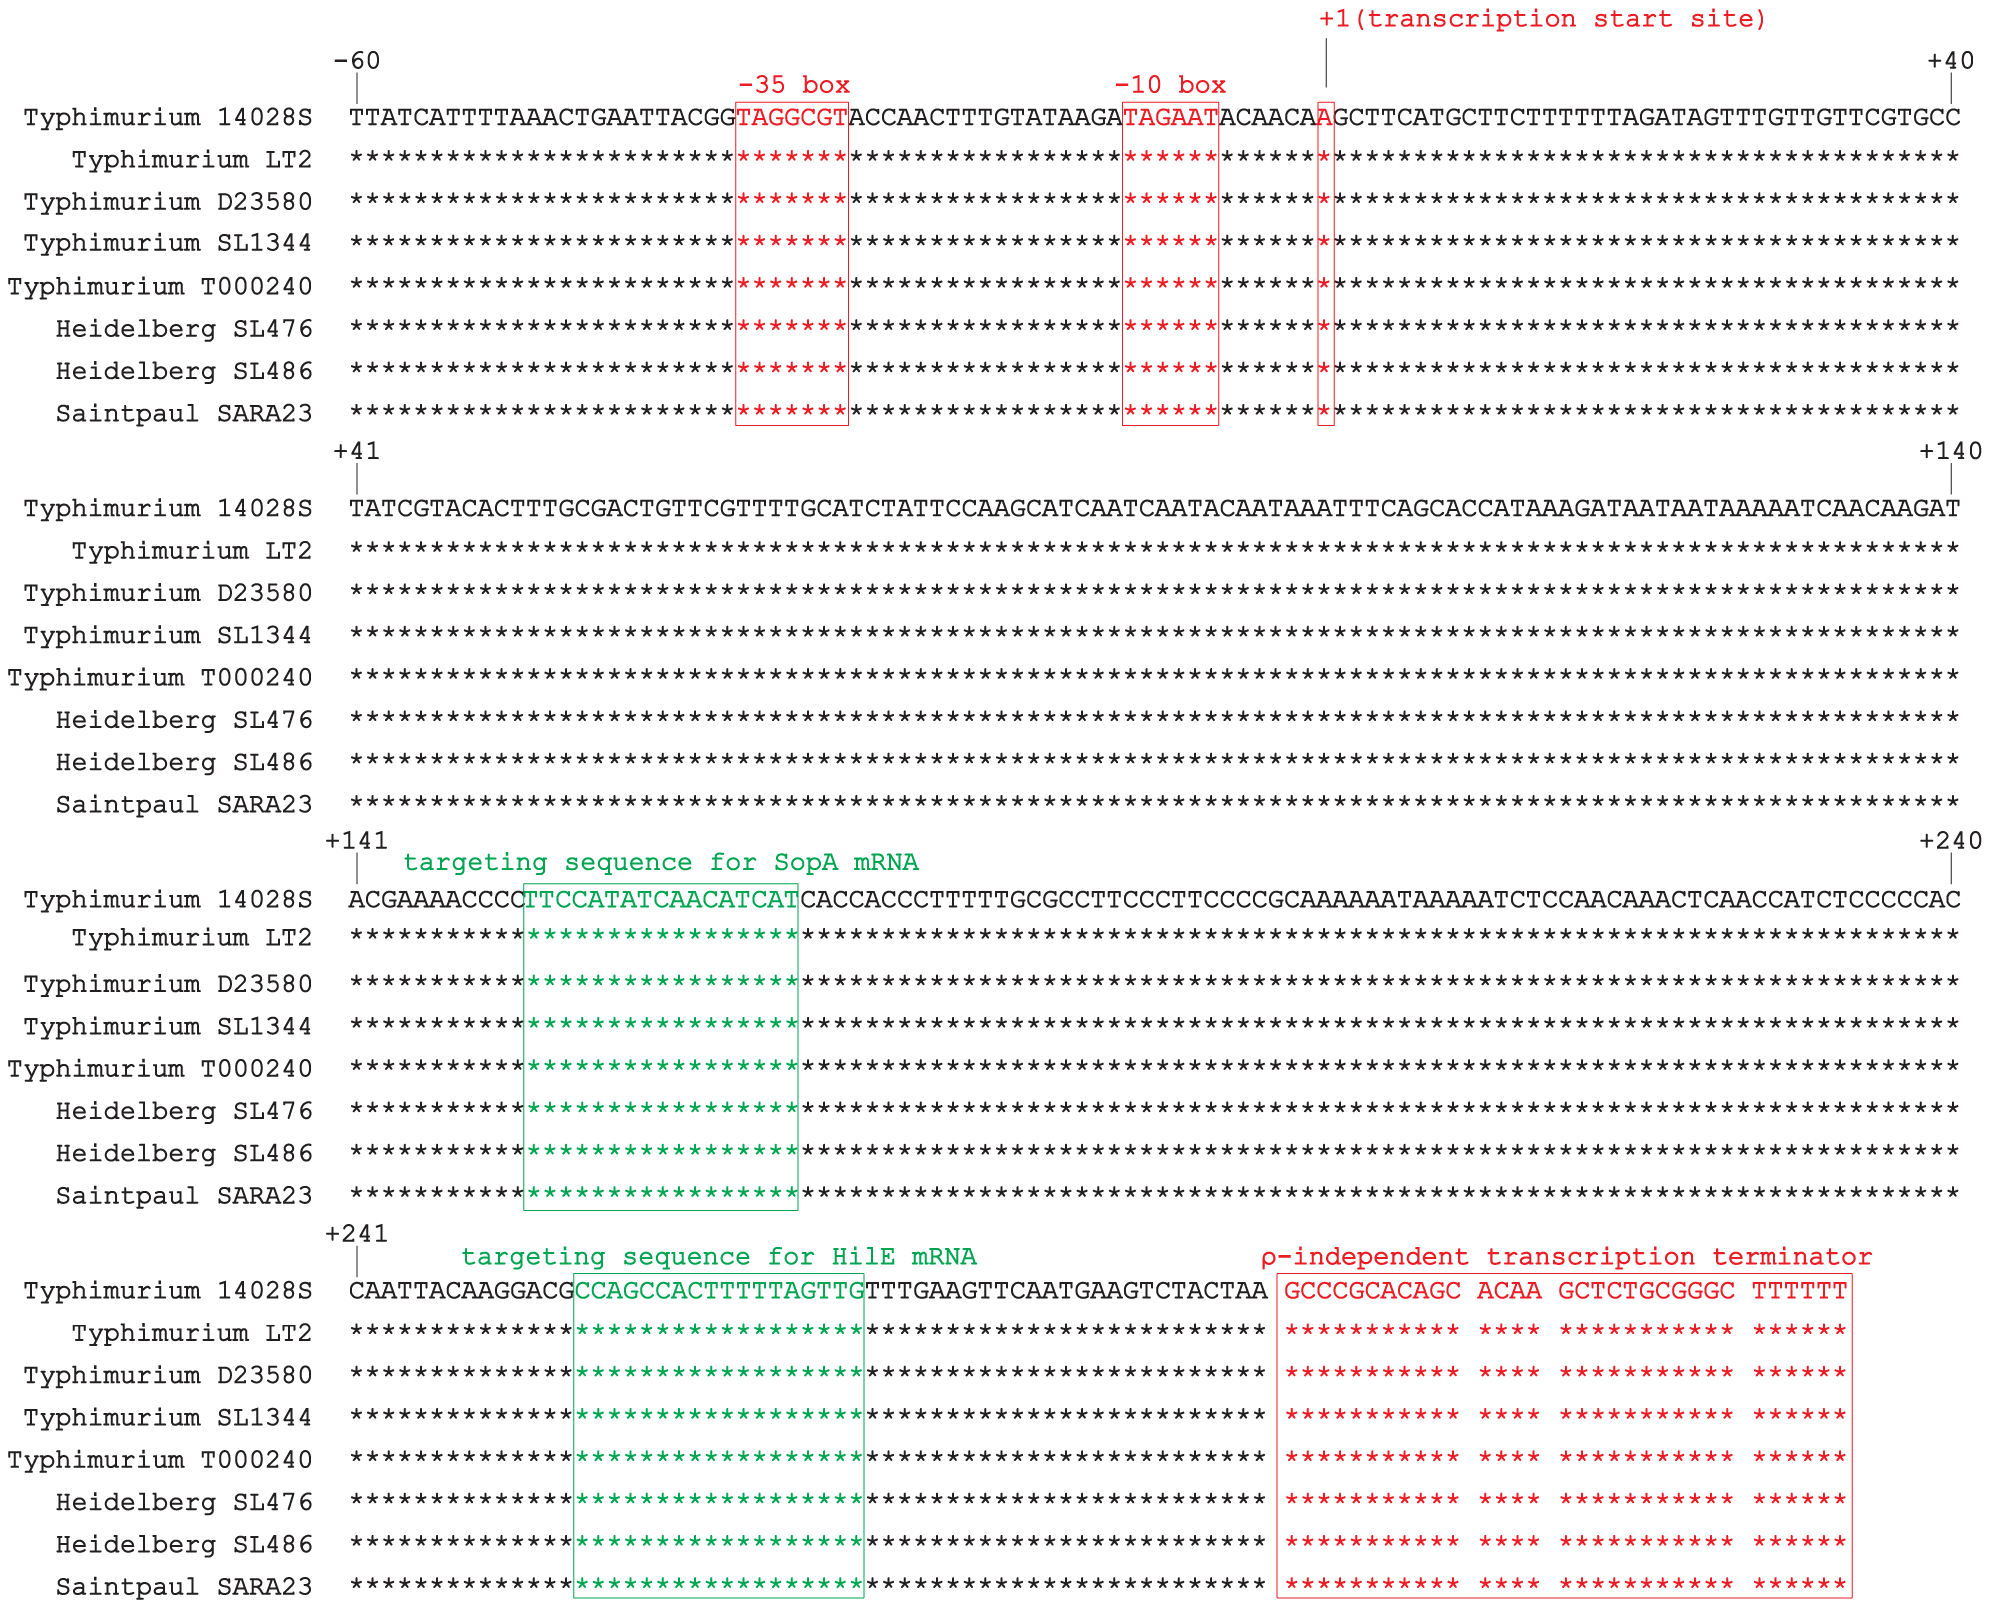 Alignment of <i>isrM</i> sequences of different <i>Salmonella</i> strains including the upstream promoter region, based on BLAST searches of the IsrM sequences in GenBank.